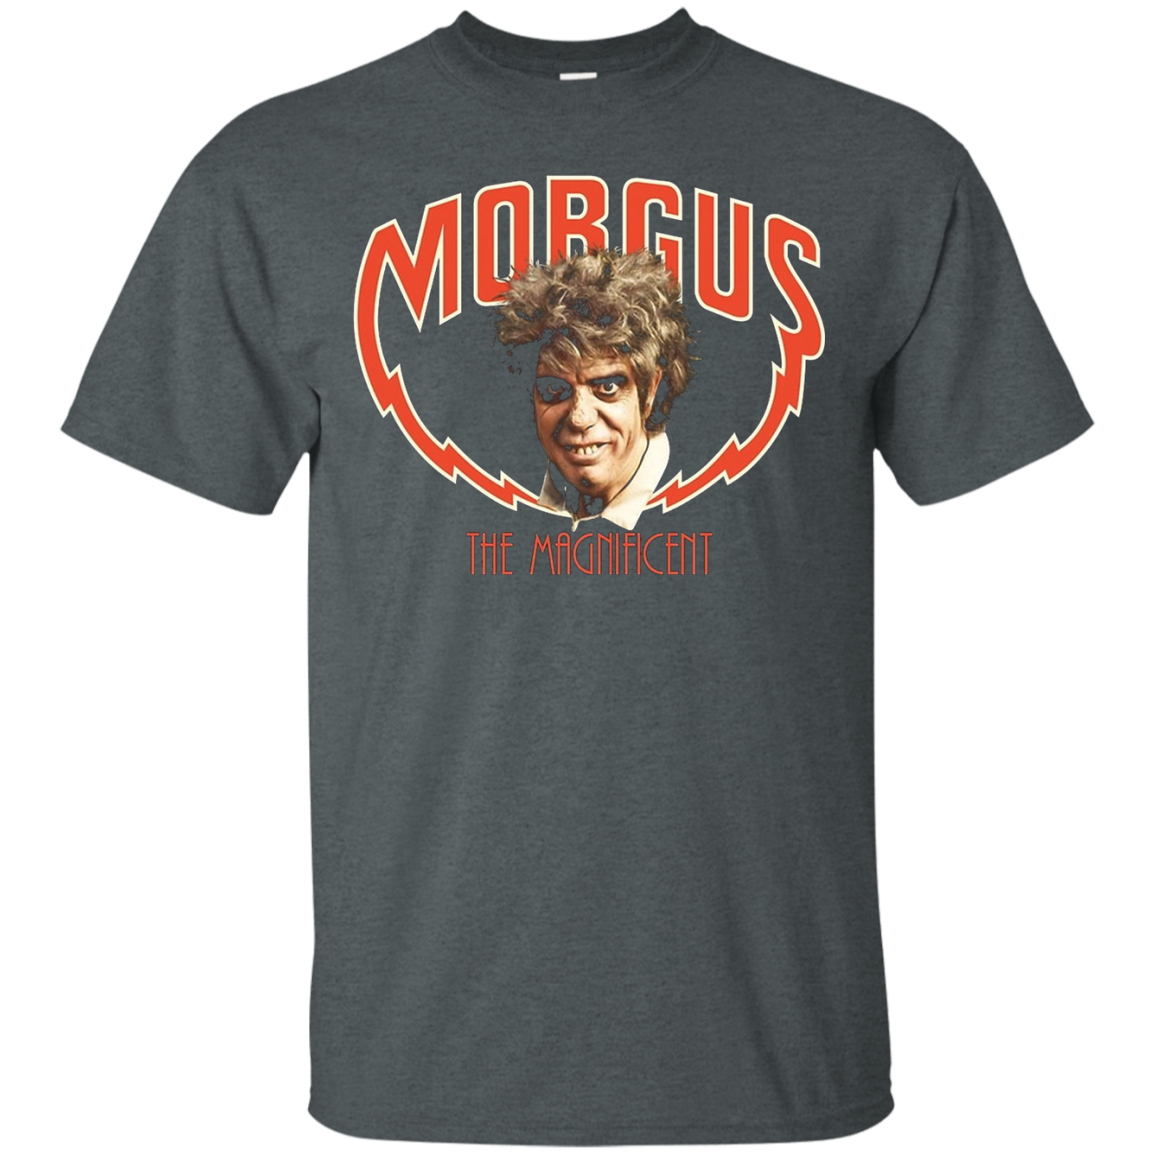 Morgus The Magnificent on a Tee Shrt